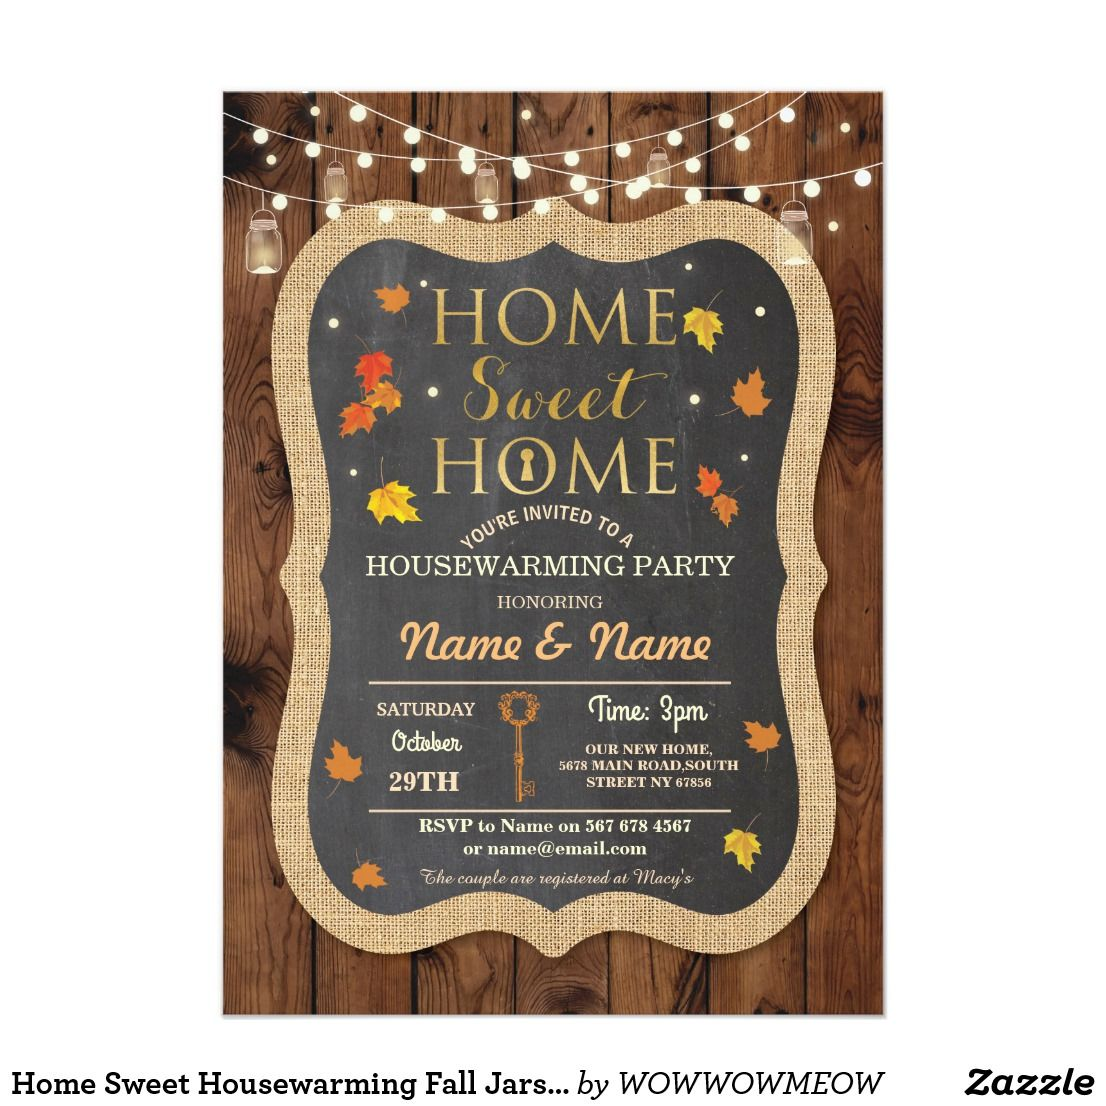 Home Sweet Housewarming Fall Jars Leaves Invite | Zazzle ...